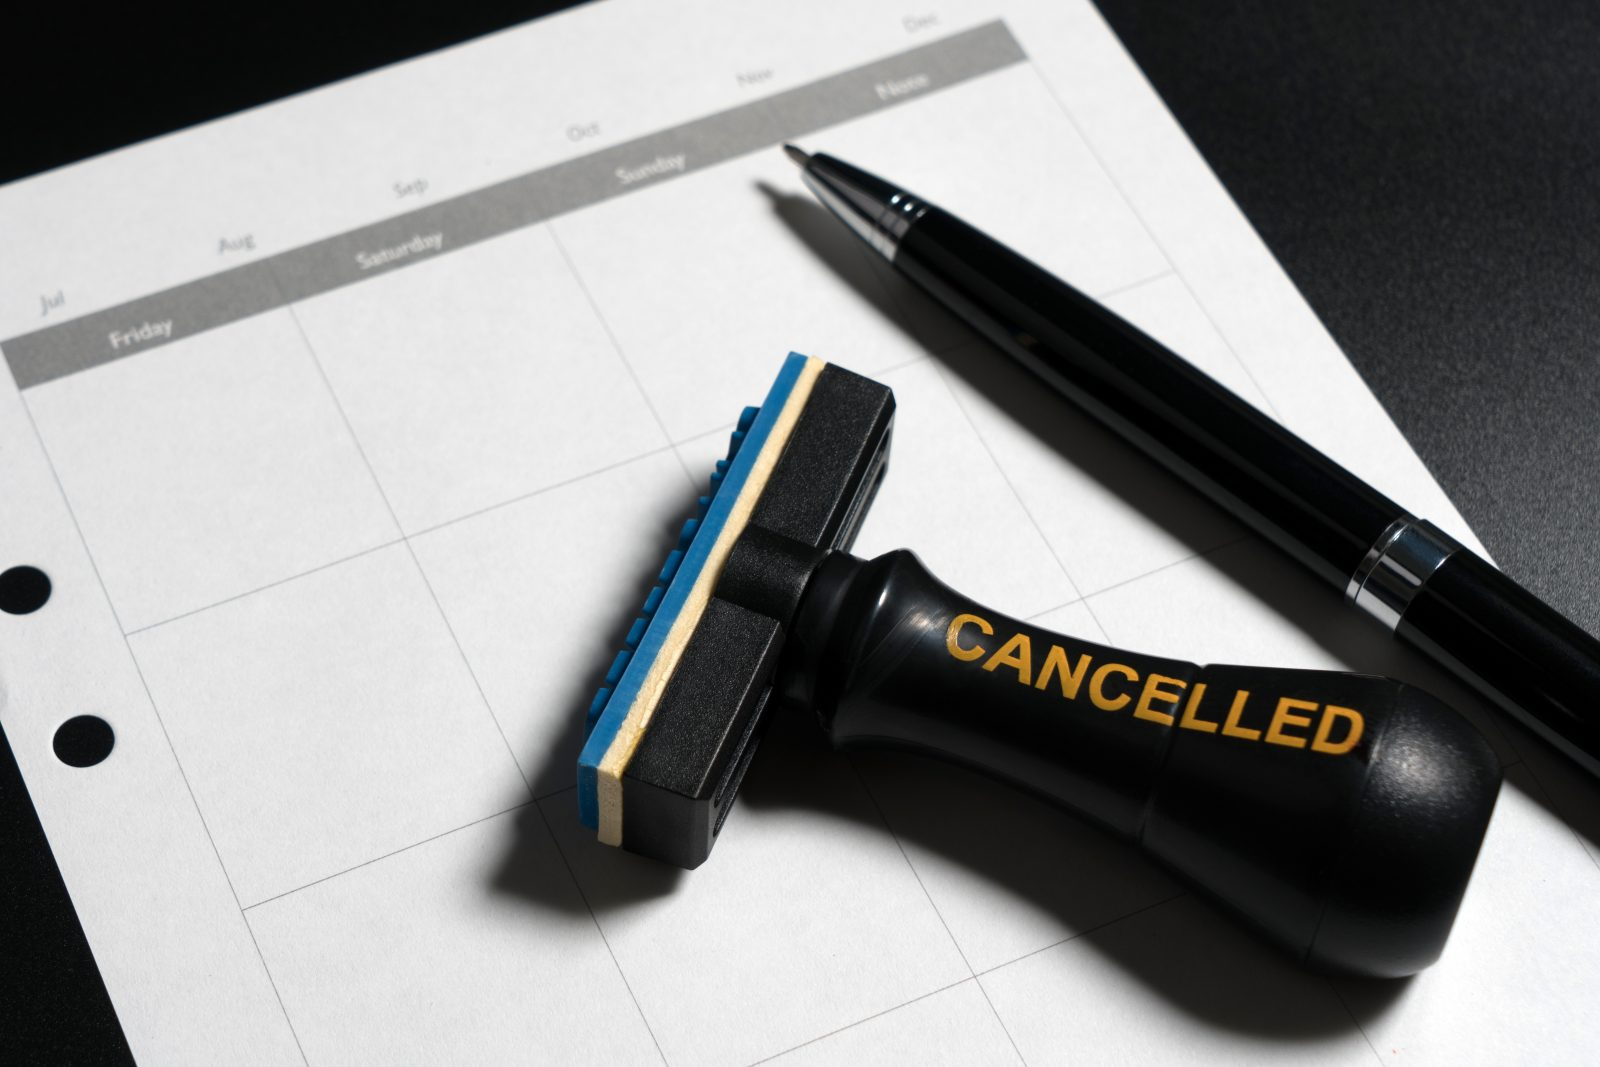 Cancelled planning, appointment, schedule, meeting concept. Business planning cancelled with blank calendar, pen and cancelled rubber stamp on black background.